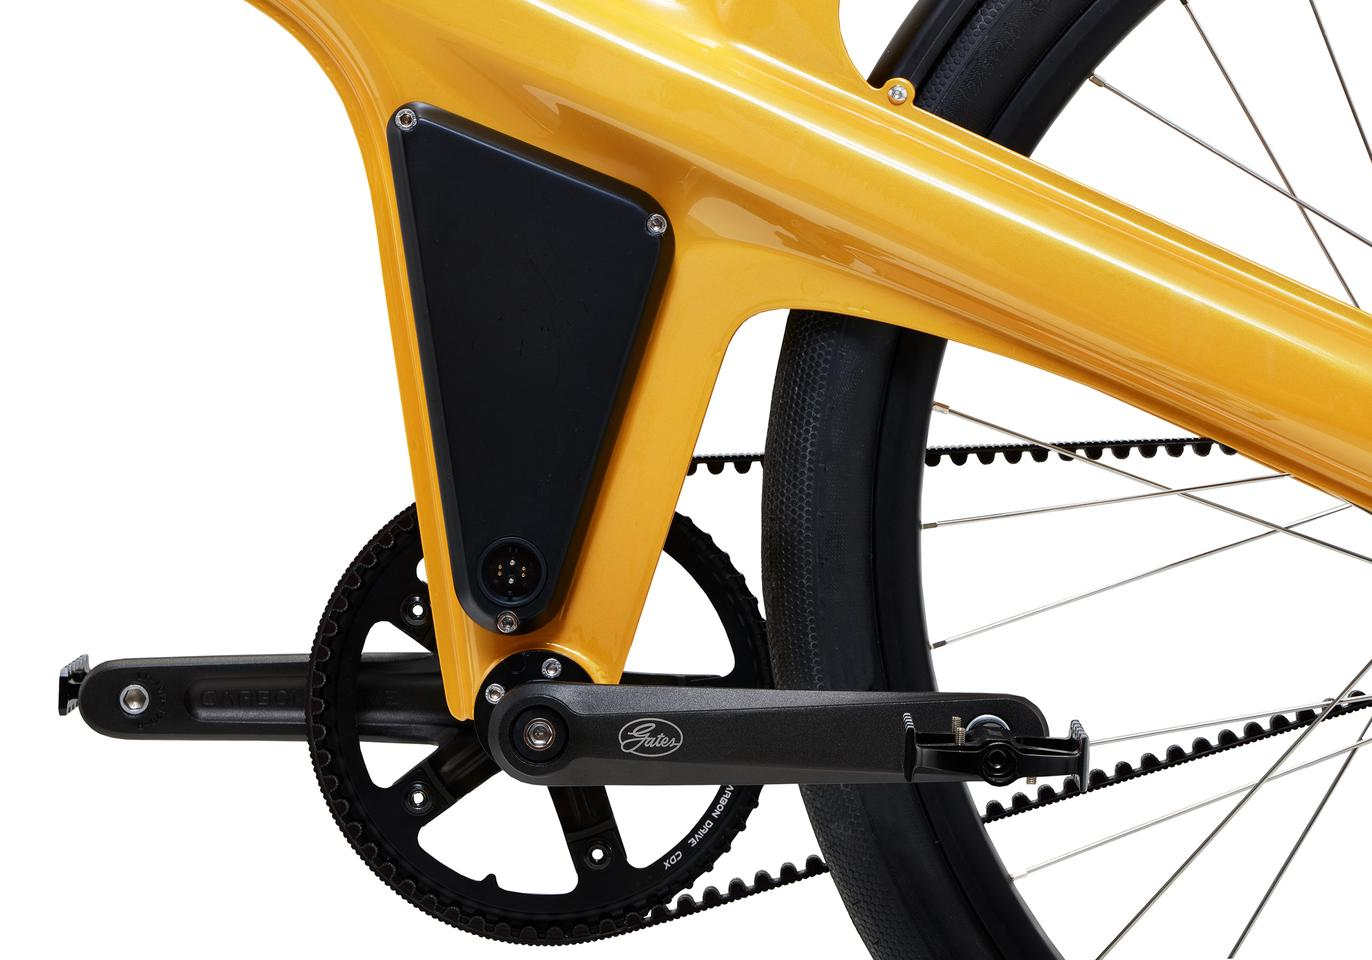 The Delta S features a zero maintenance Gates Carbon Belt Drive